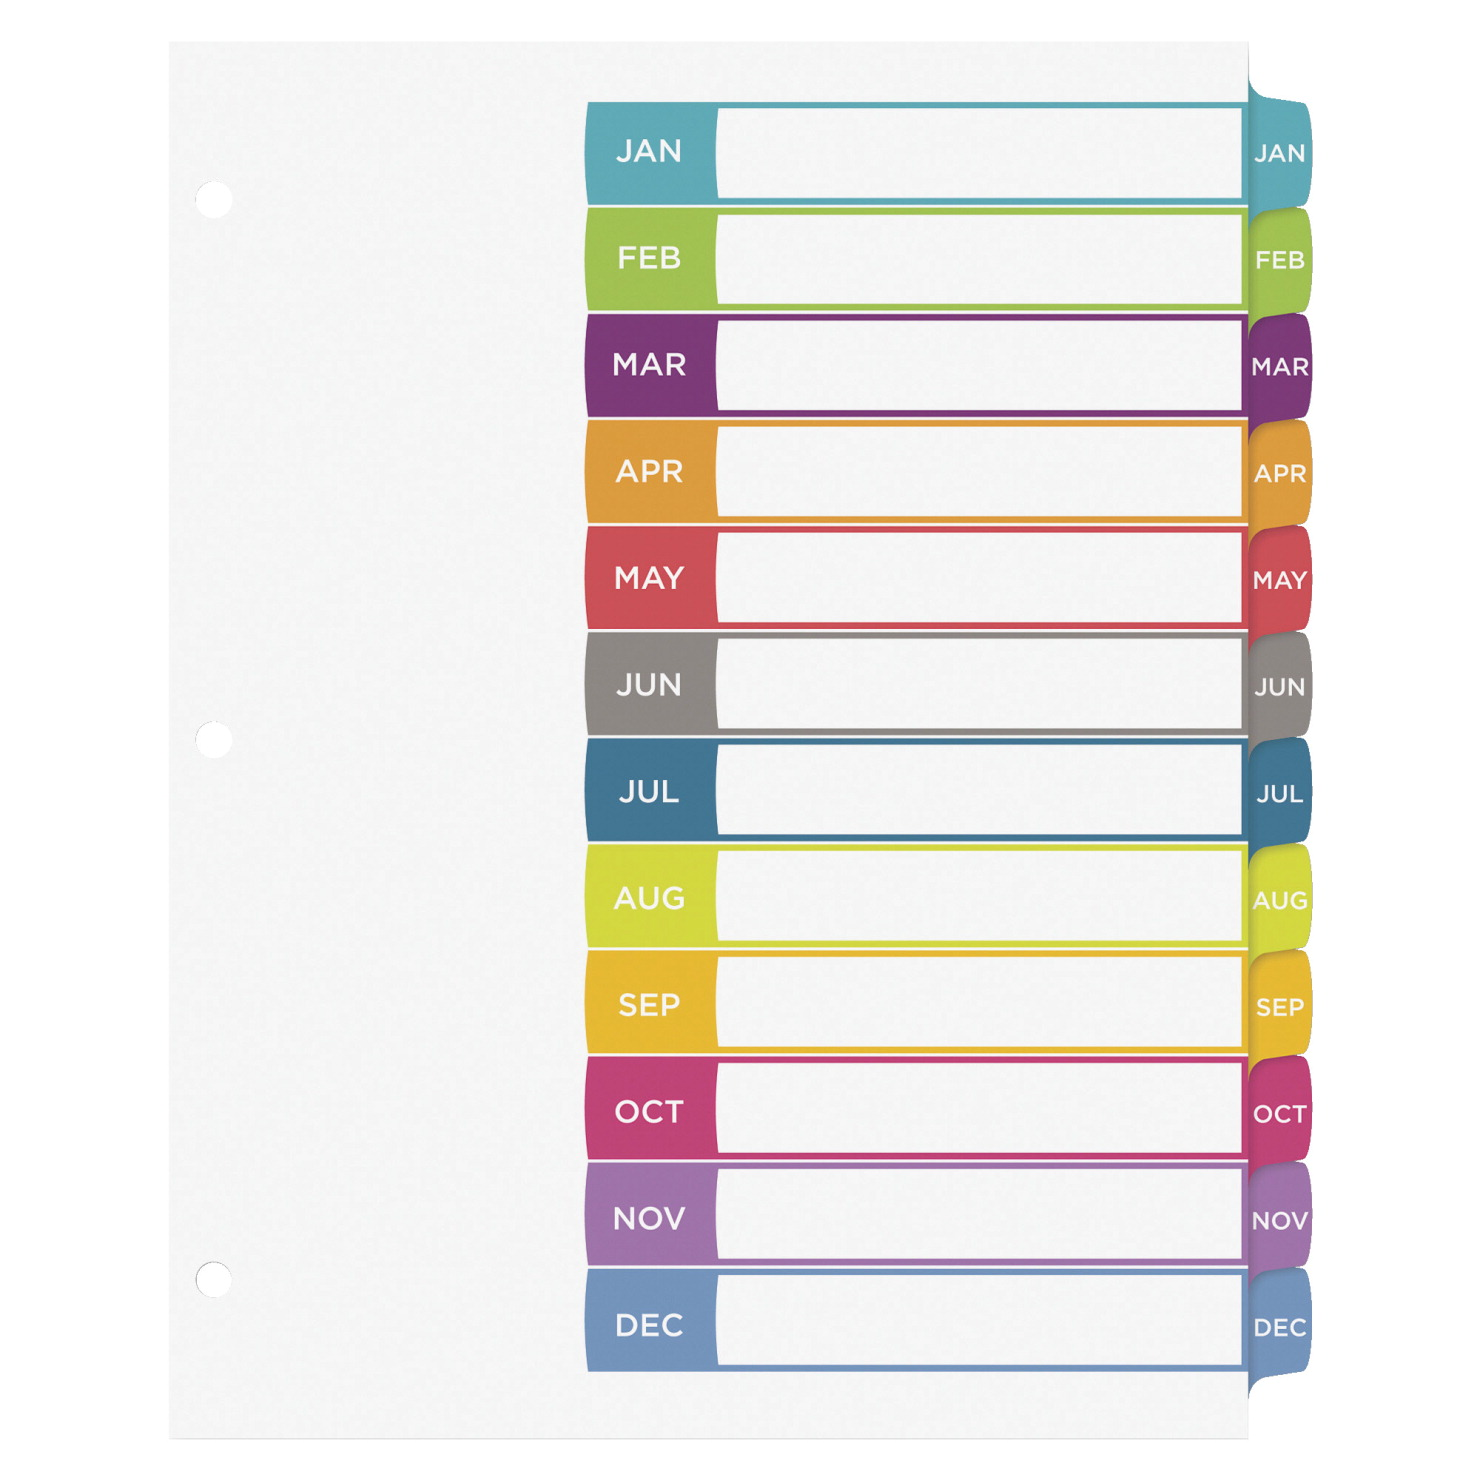 Avery ready index jan dec tab dividers multiple colors for 12 tab divider template